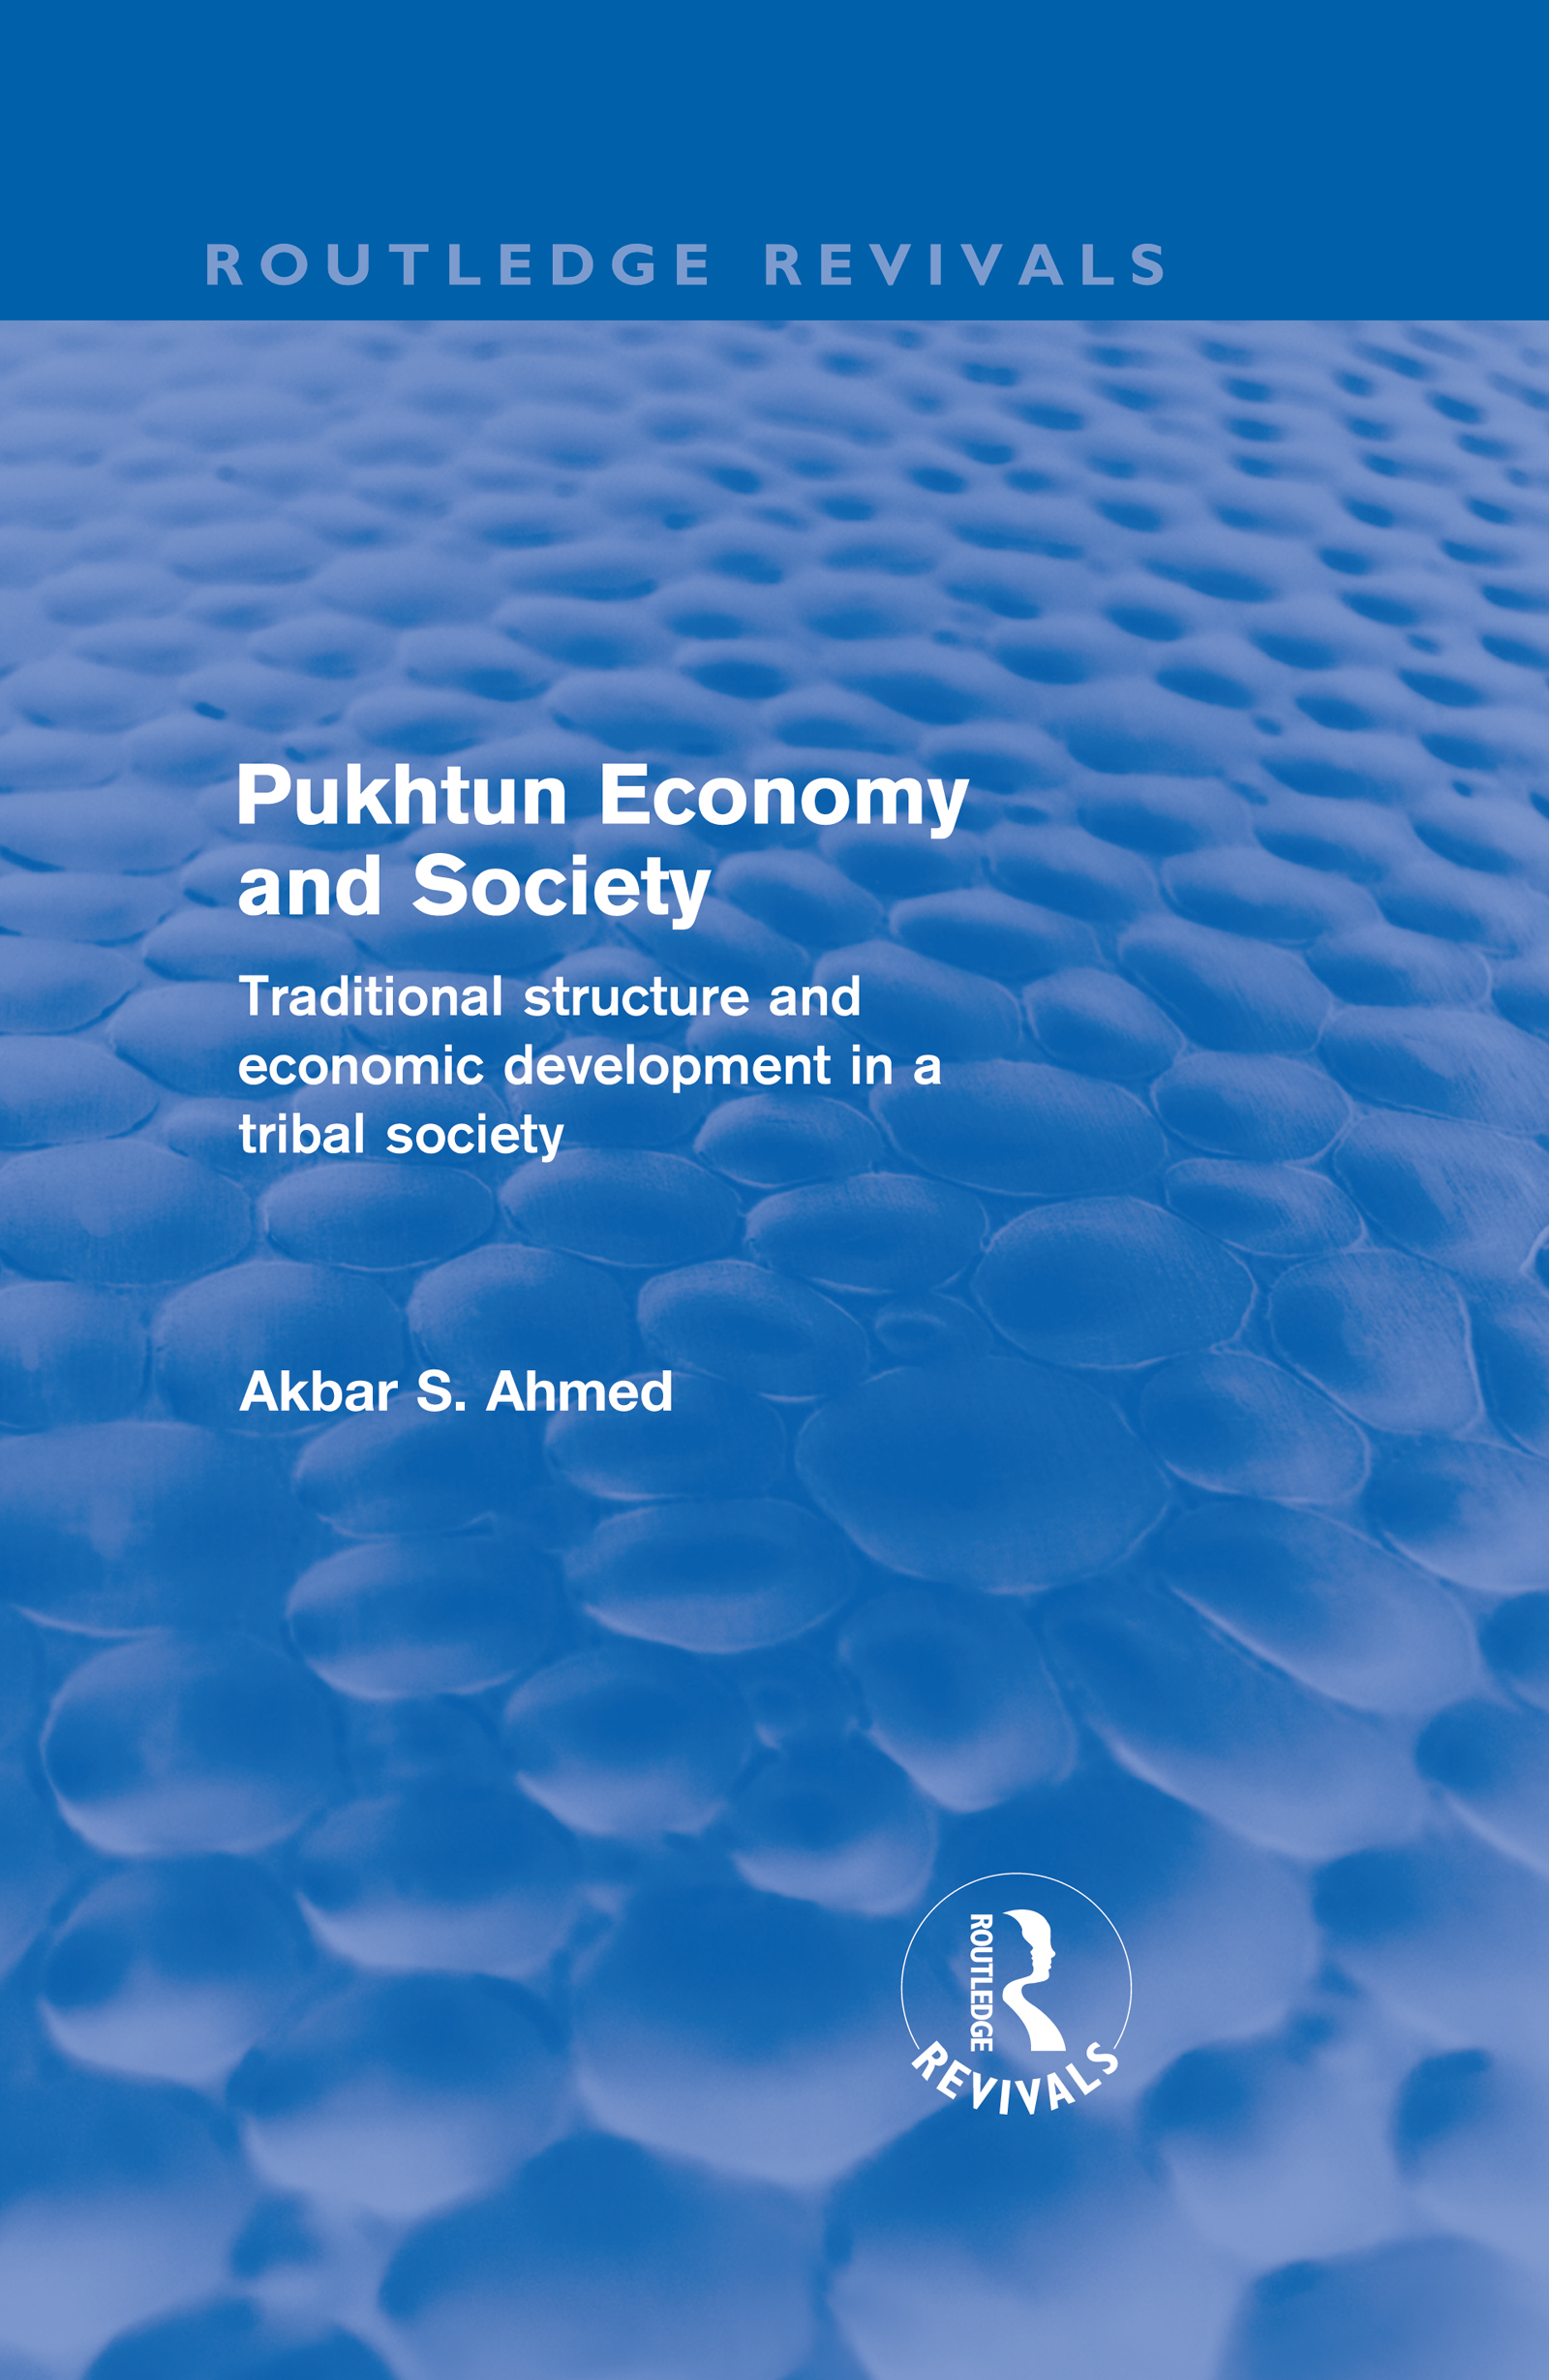 Pukhtun Economy and Society (Routledge Revivals): Traditional Structure and Economic Development in a Tribal Society (Hardback) book cover